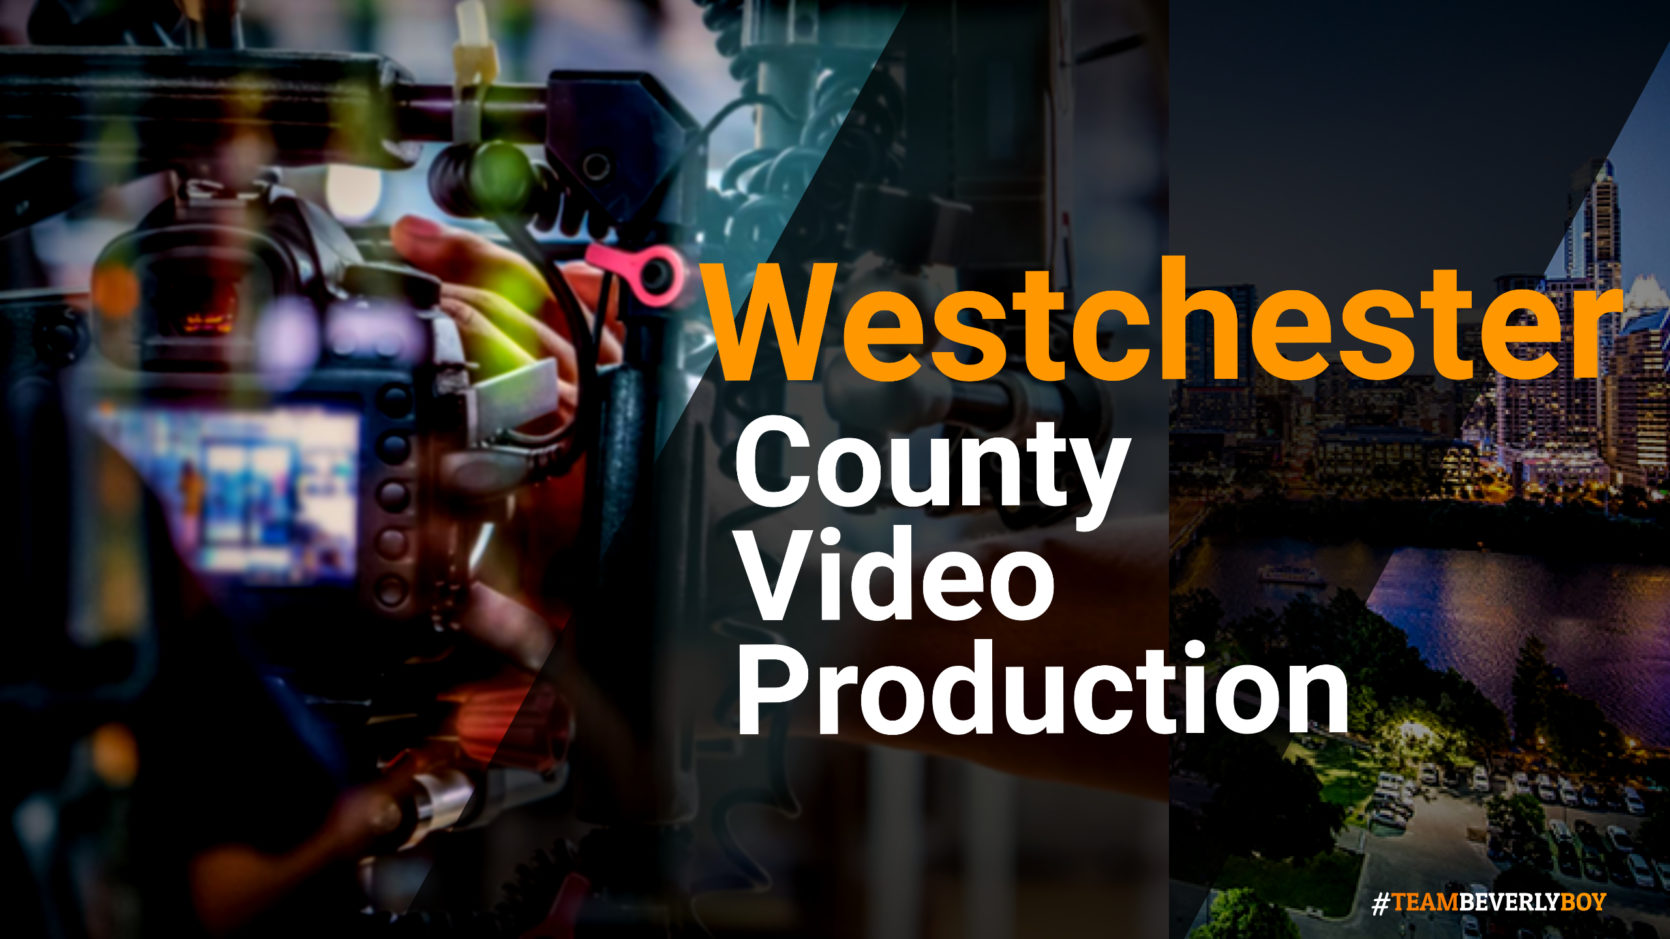 Westchester County video production